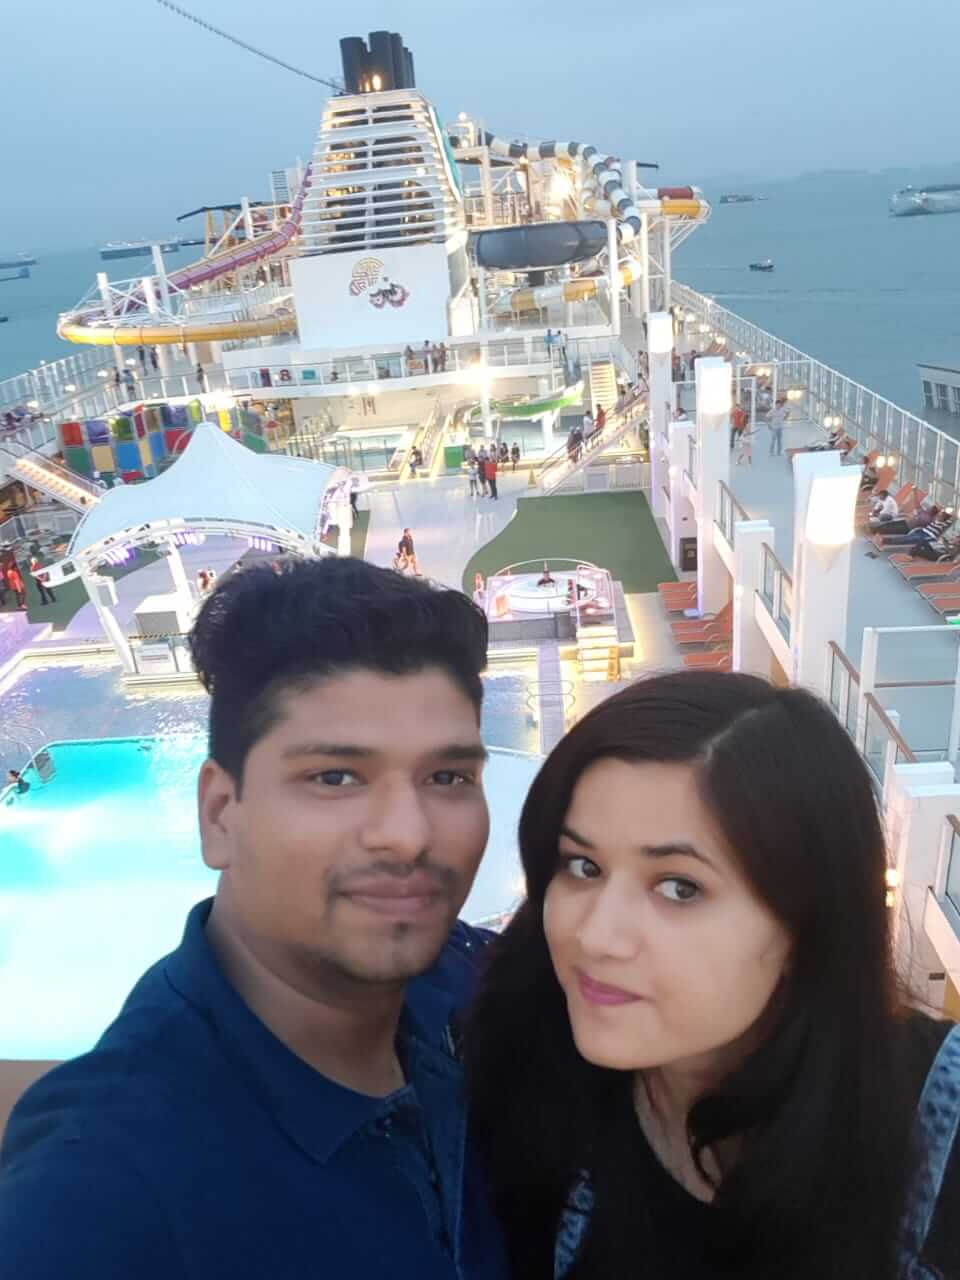 on the cruise